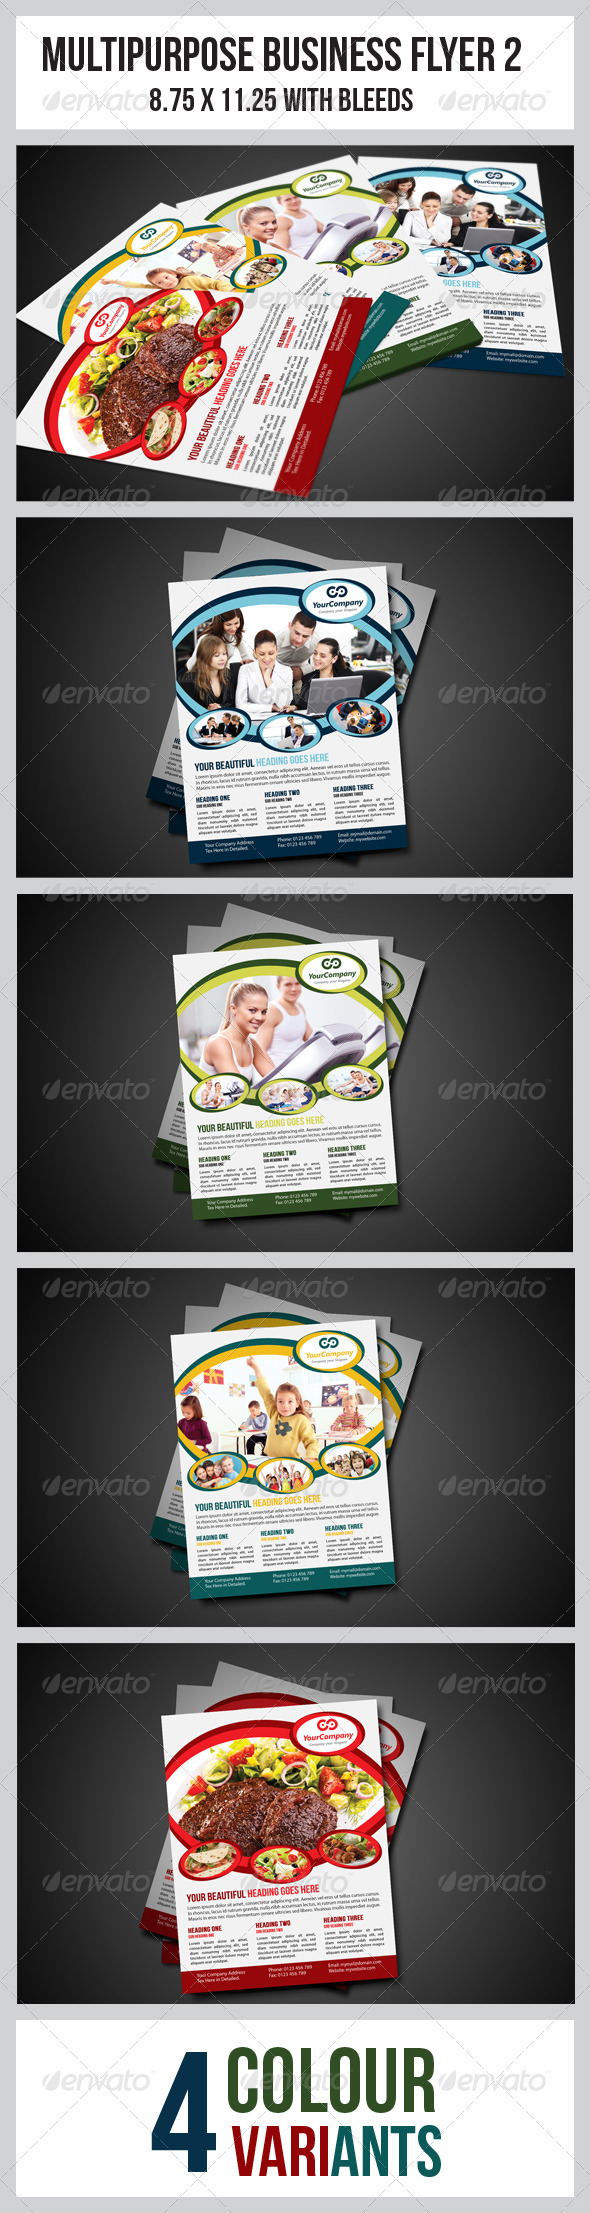 Multipurpose Business Flyer 2 - Corporate Flyers